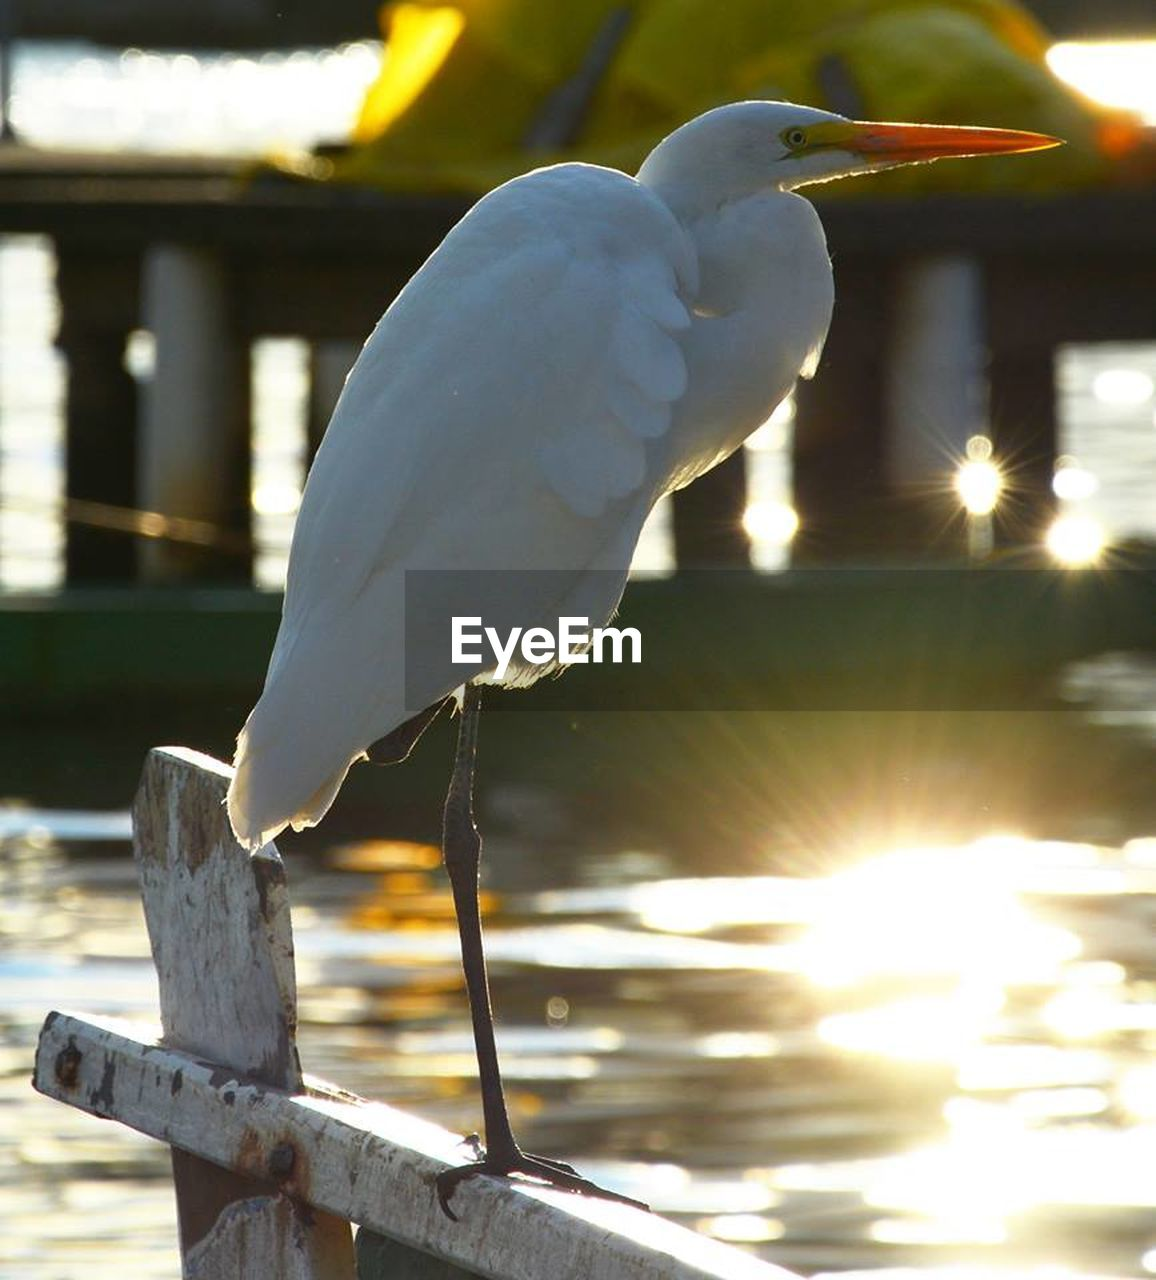 bird, vertebrate, animal themes, animals in the wild, animal, one animal, perching, focus on foreground, animal wildlife, sunlight, no people, nature, white color, day, water, close-up, egret, outdoors, lake